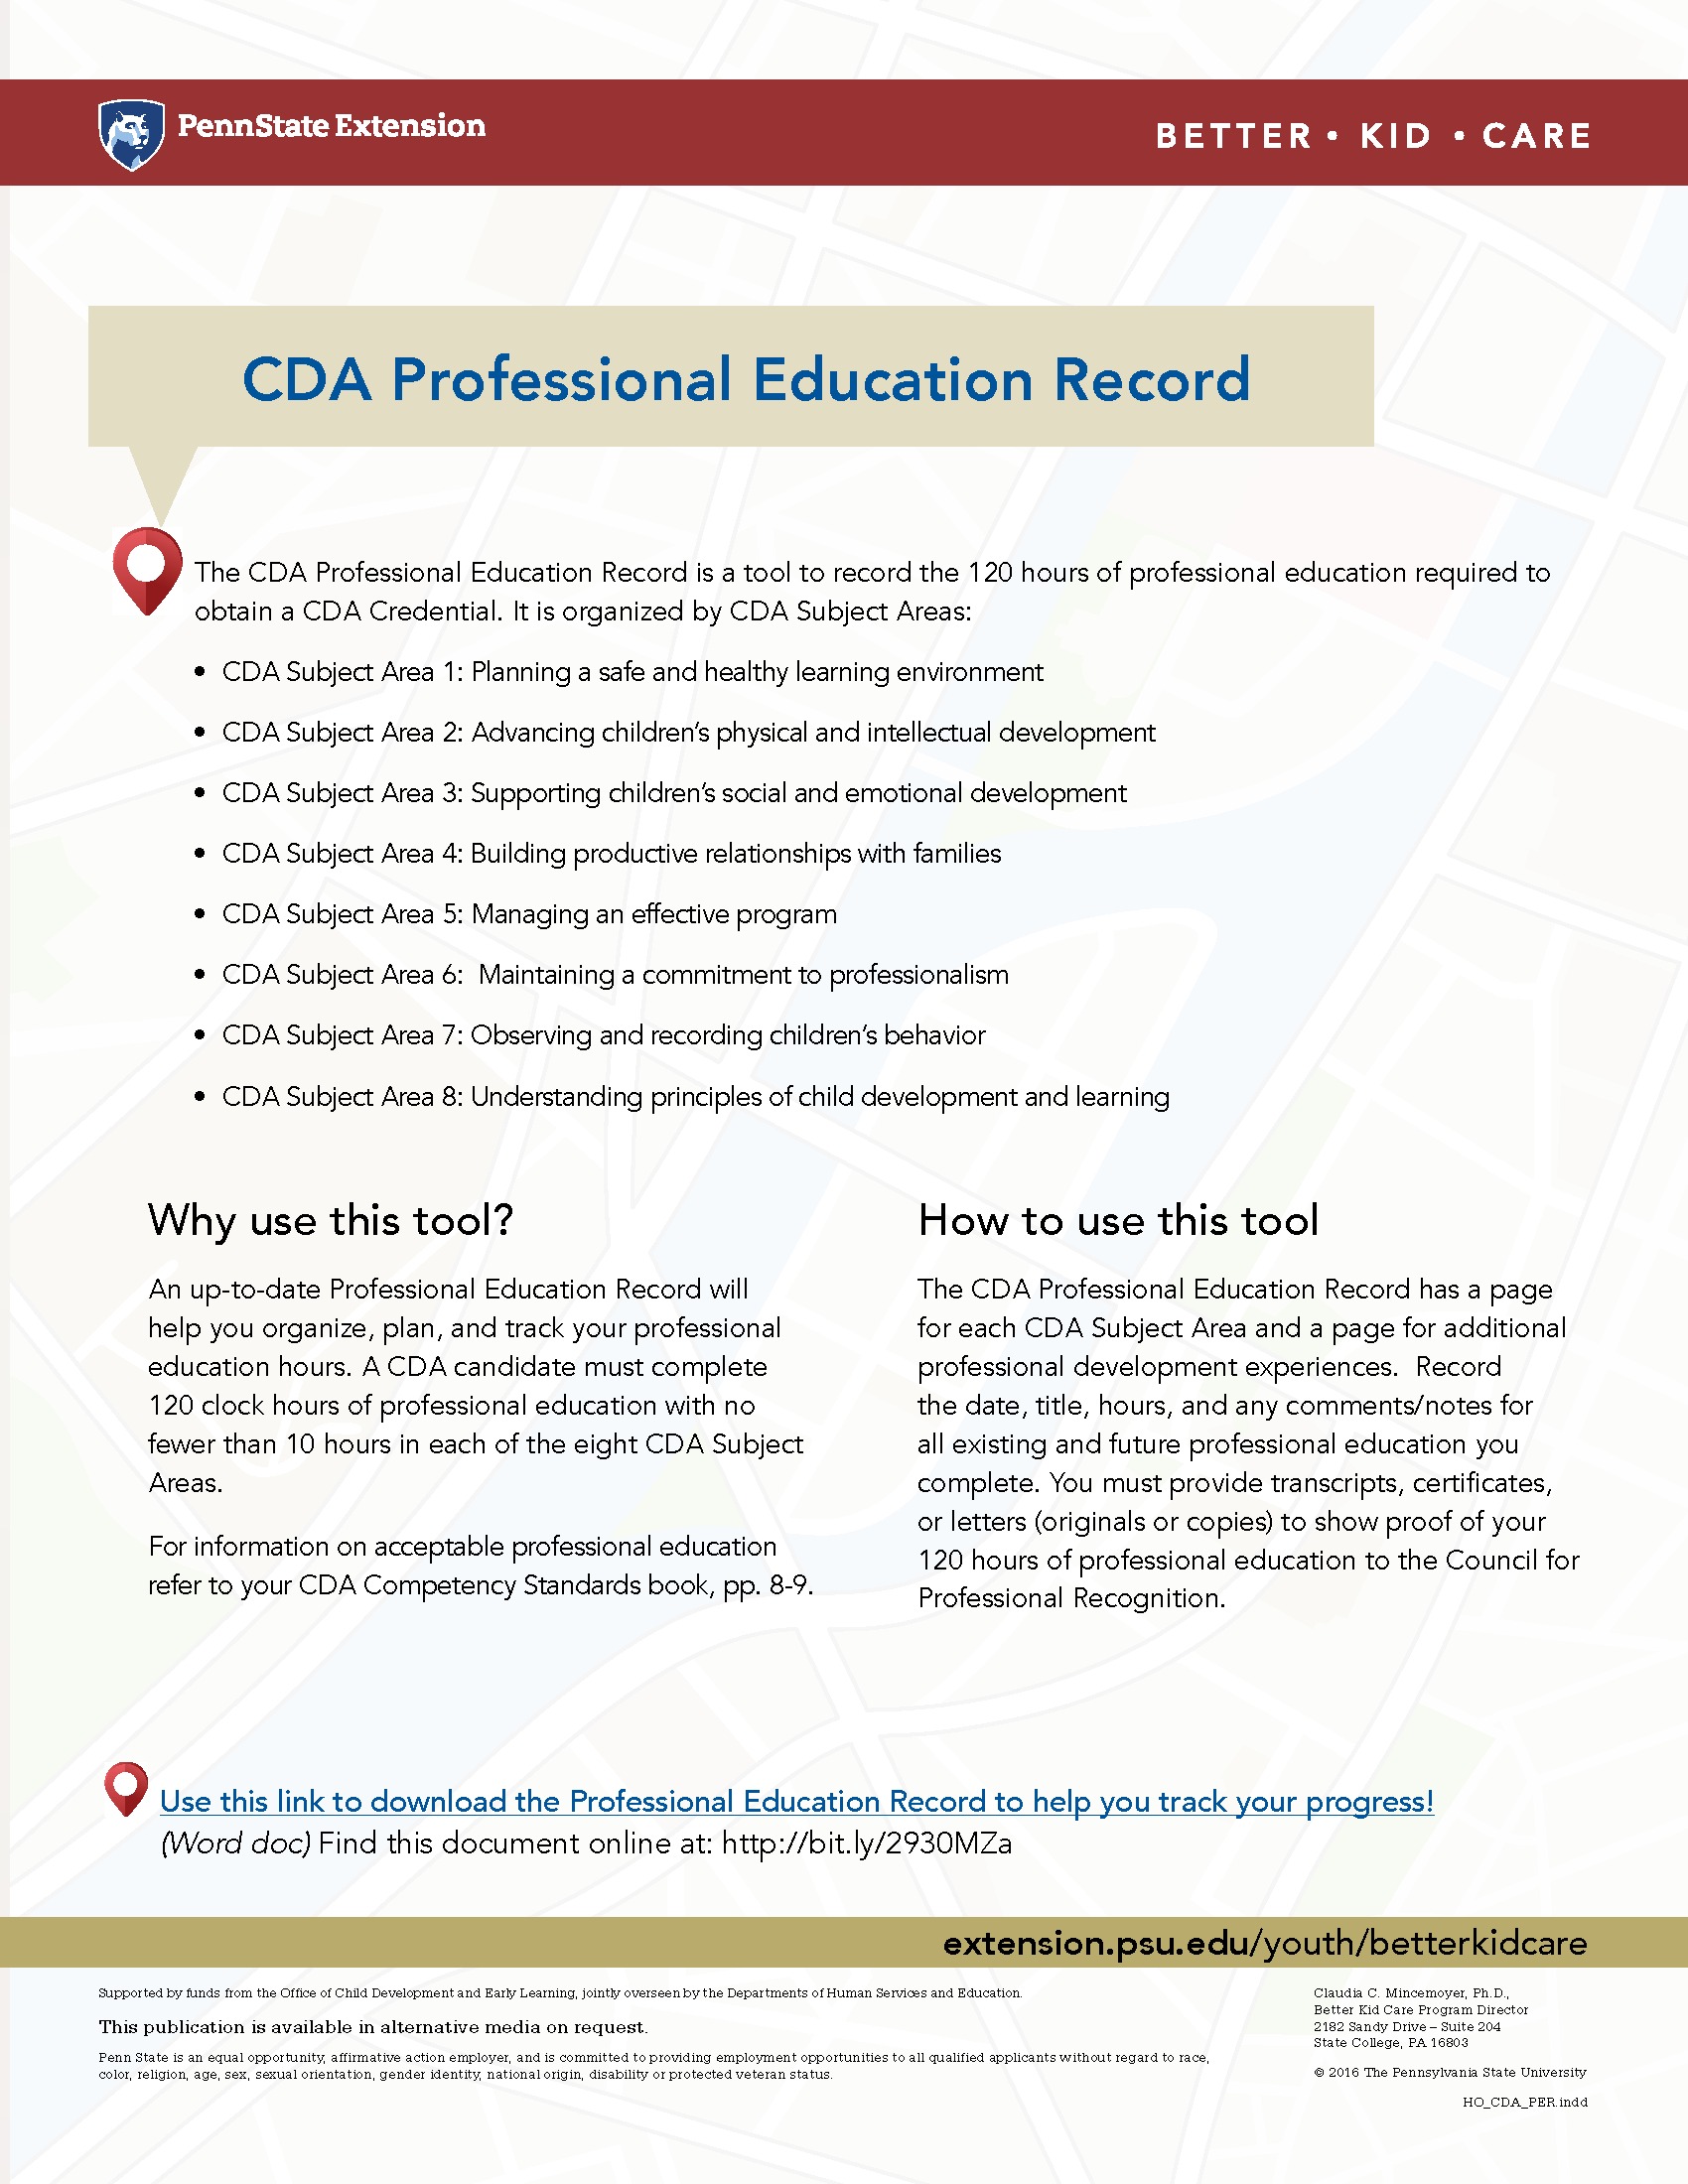 Cda Professional Education Record A Tool To Help Organize